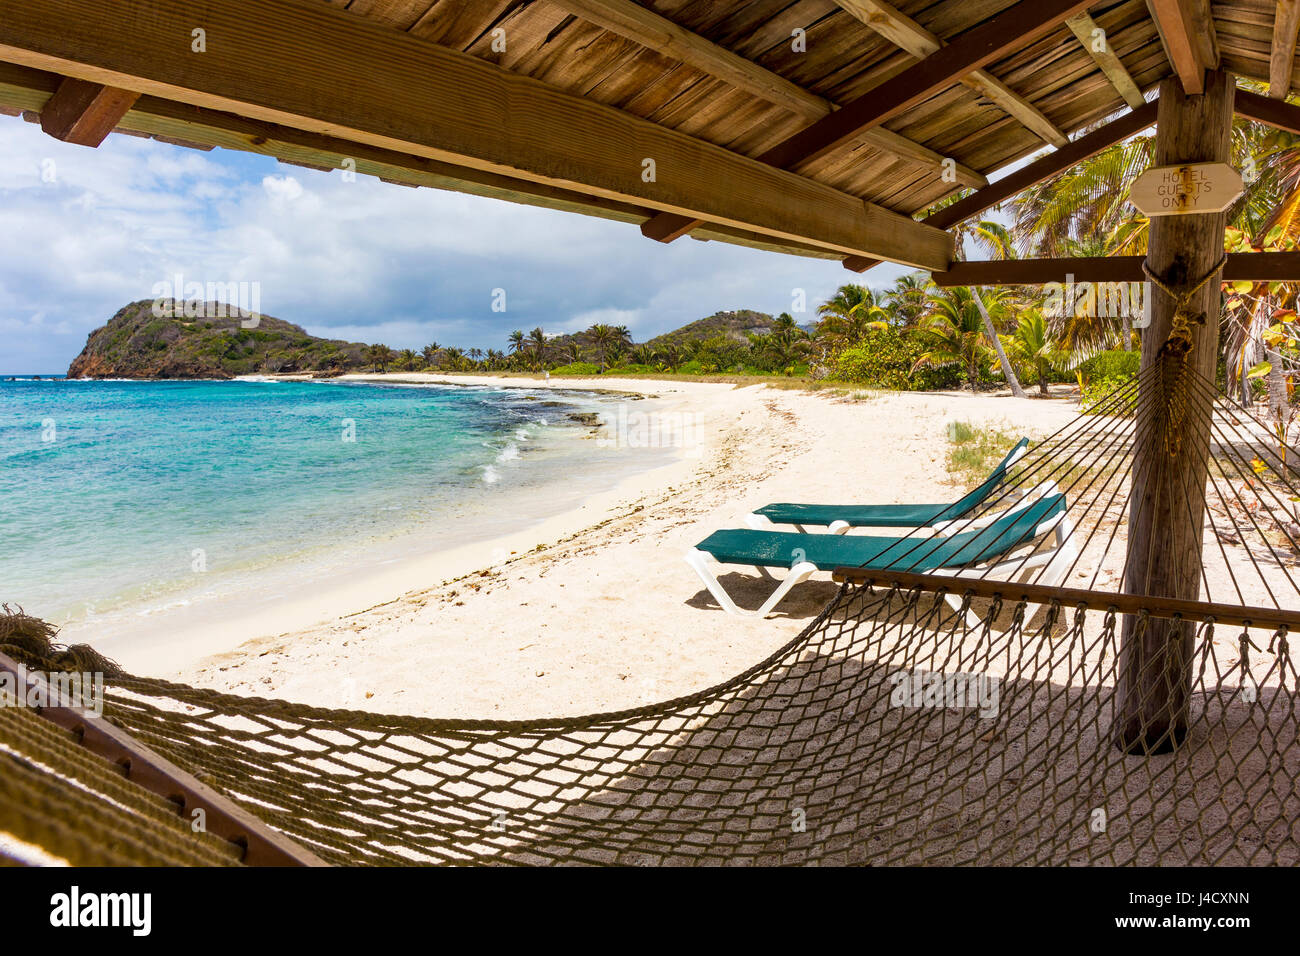 Hammock and Sun Loungers on a Secluded Caribbean Beach with Ocean